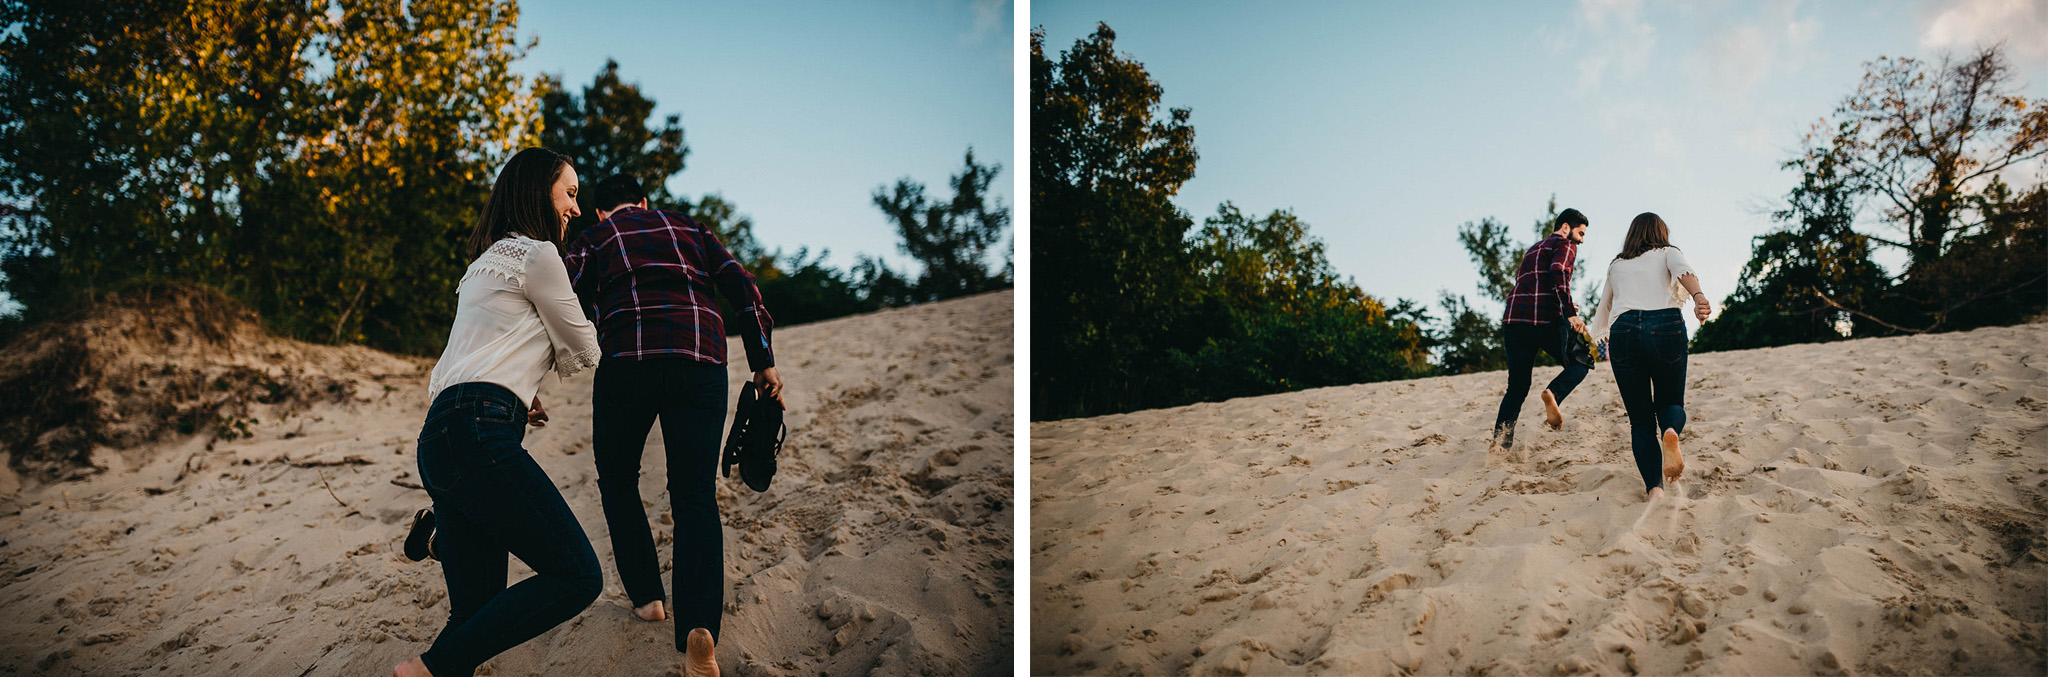 Engagement photo of couple racing up a sand dune